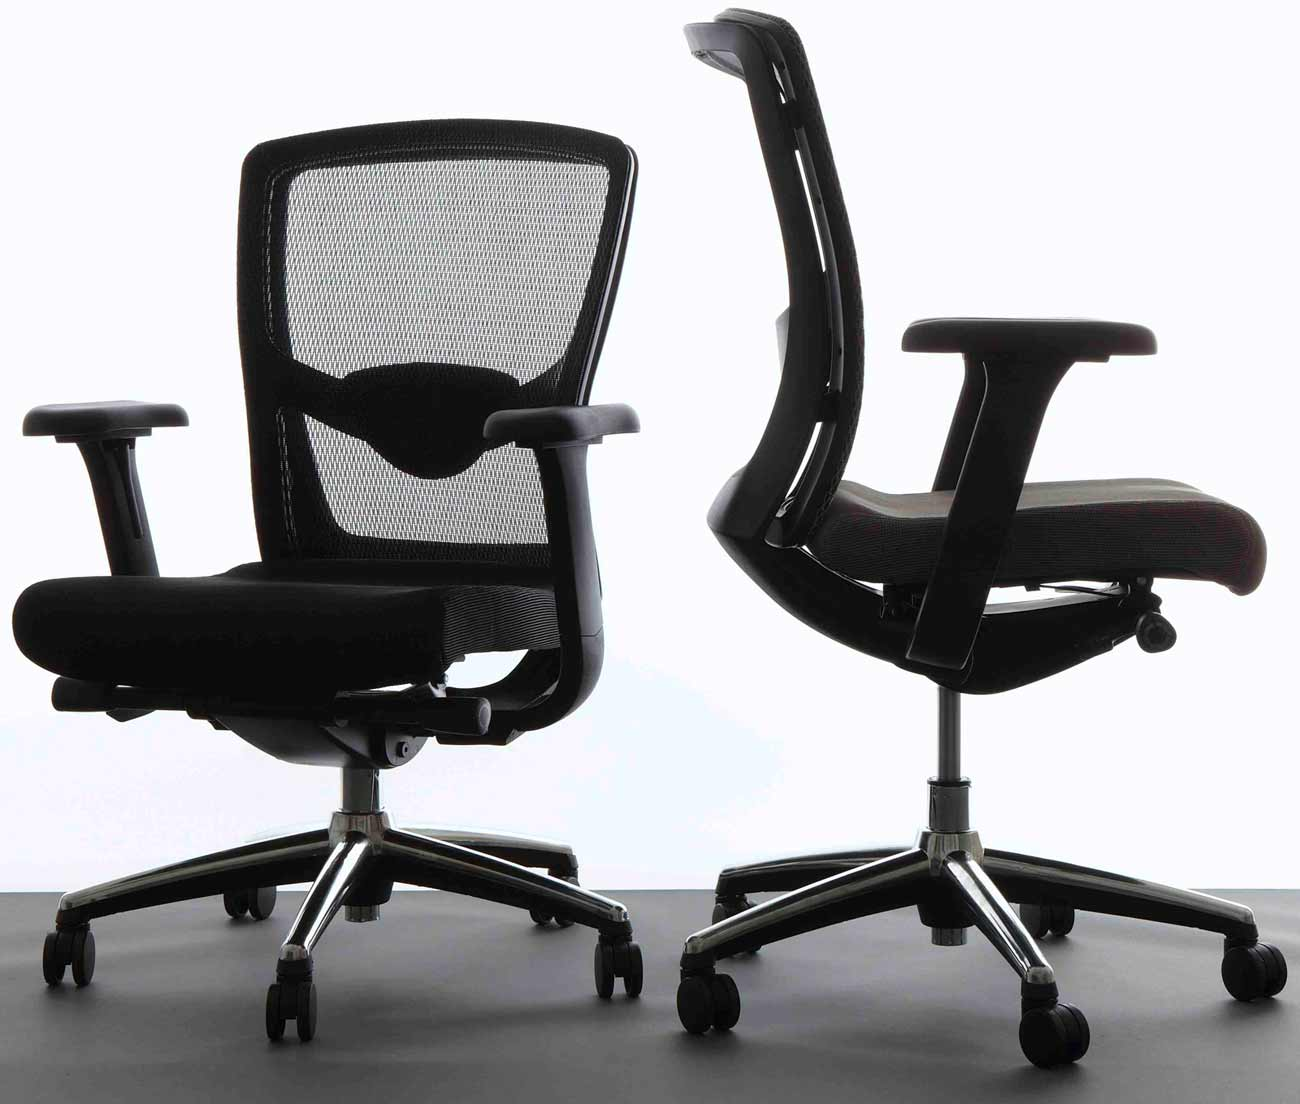 Office Star Progrid black mesh ergonomic chair